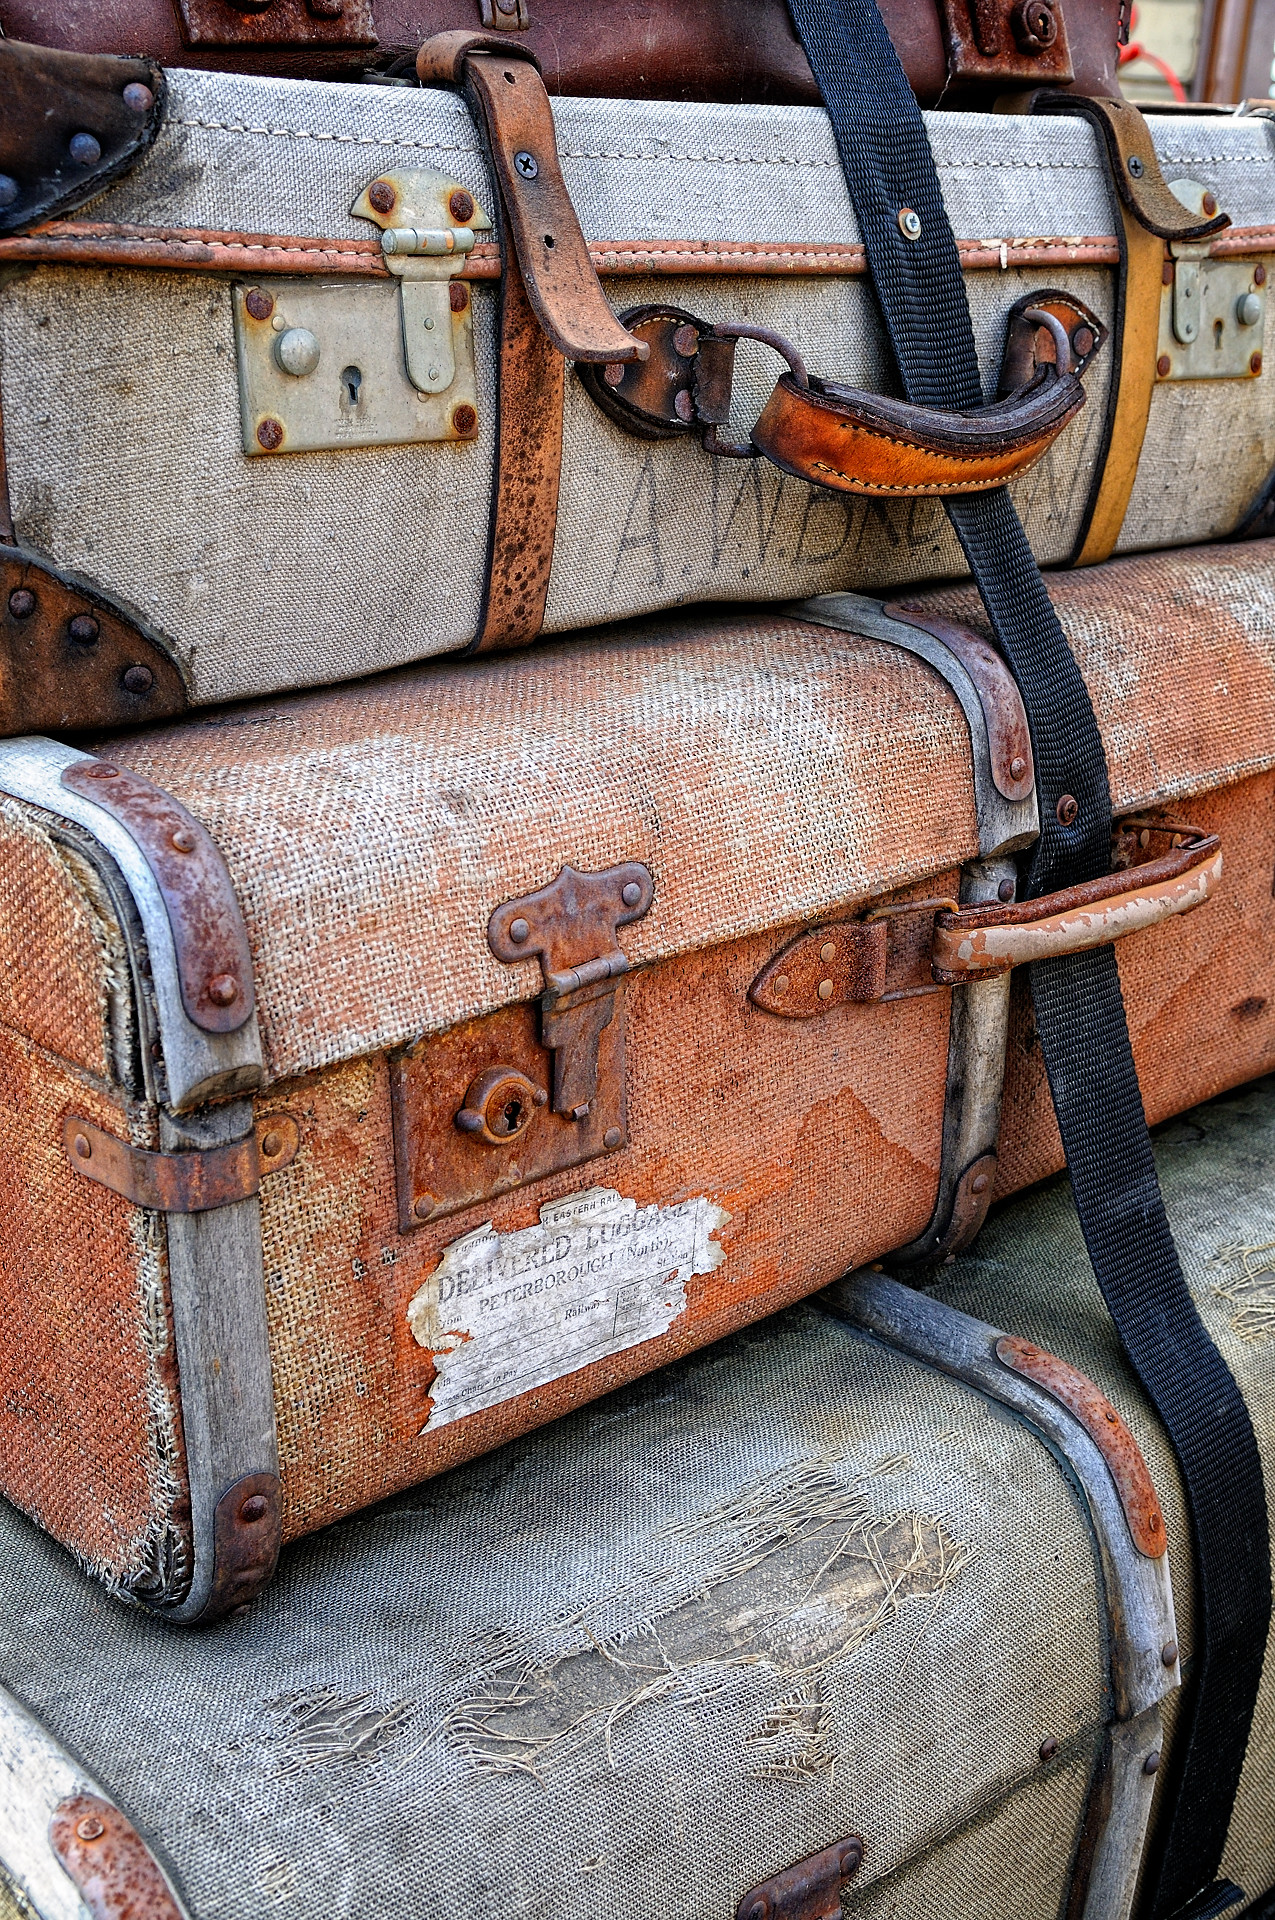 Packing Advice from Expert Travelers